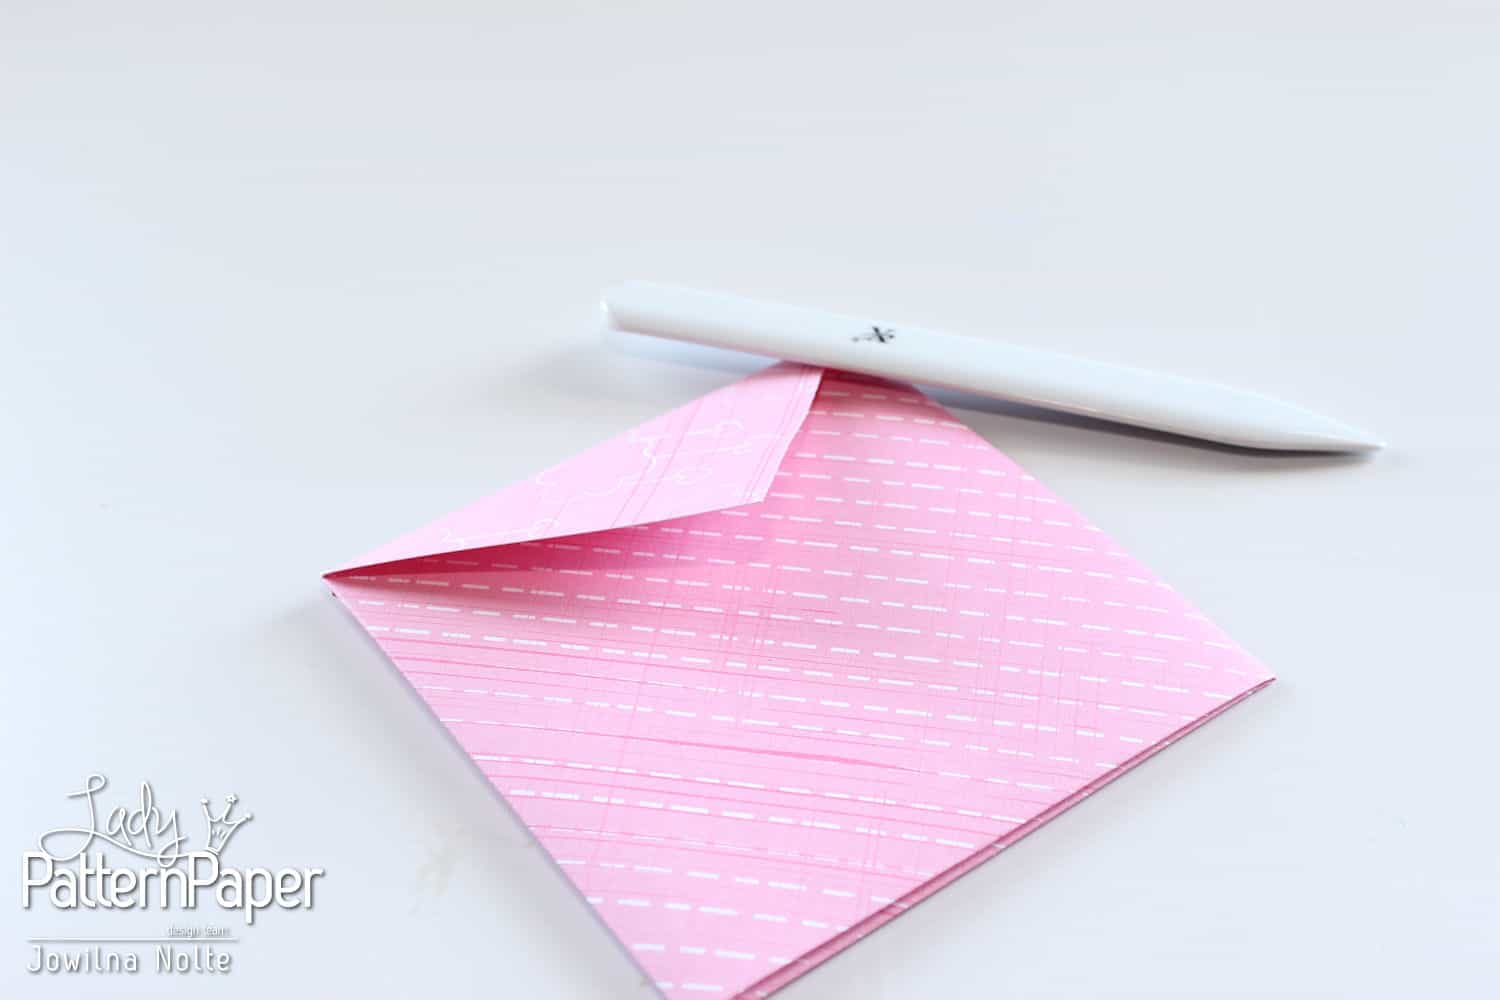 Pocket Envelopes - Step 5